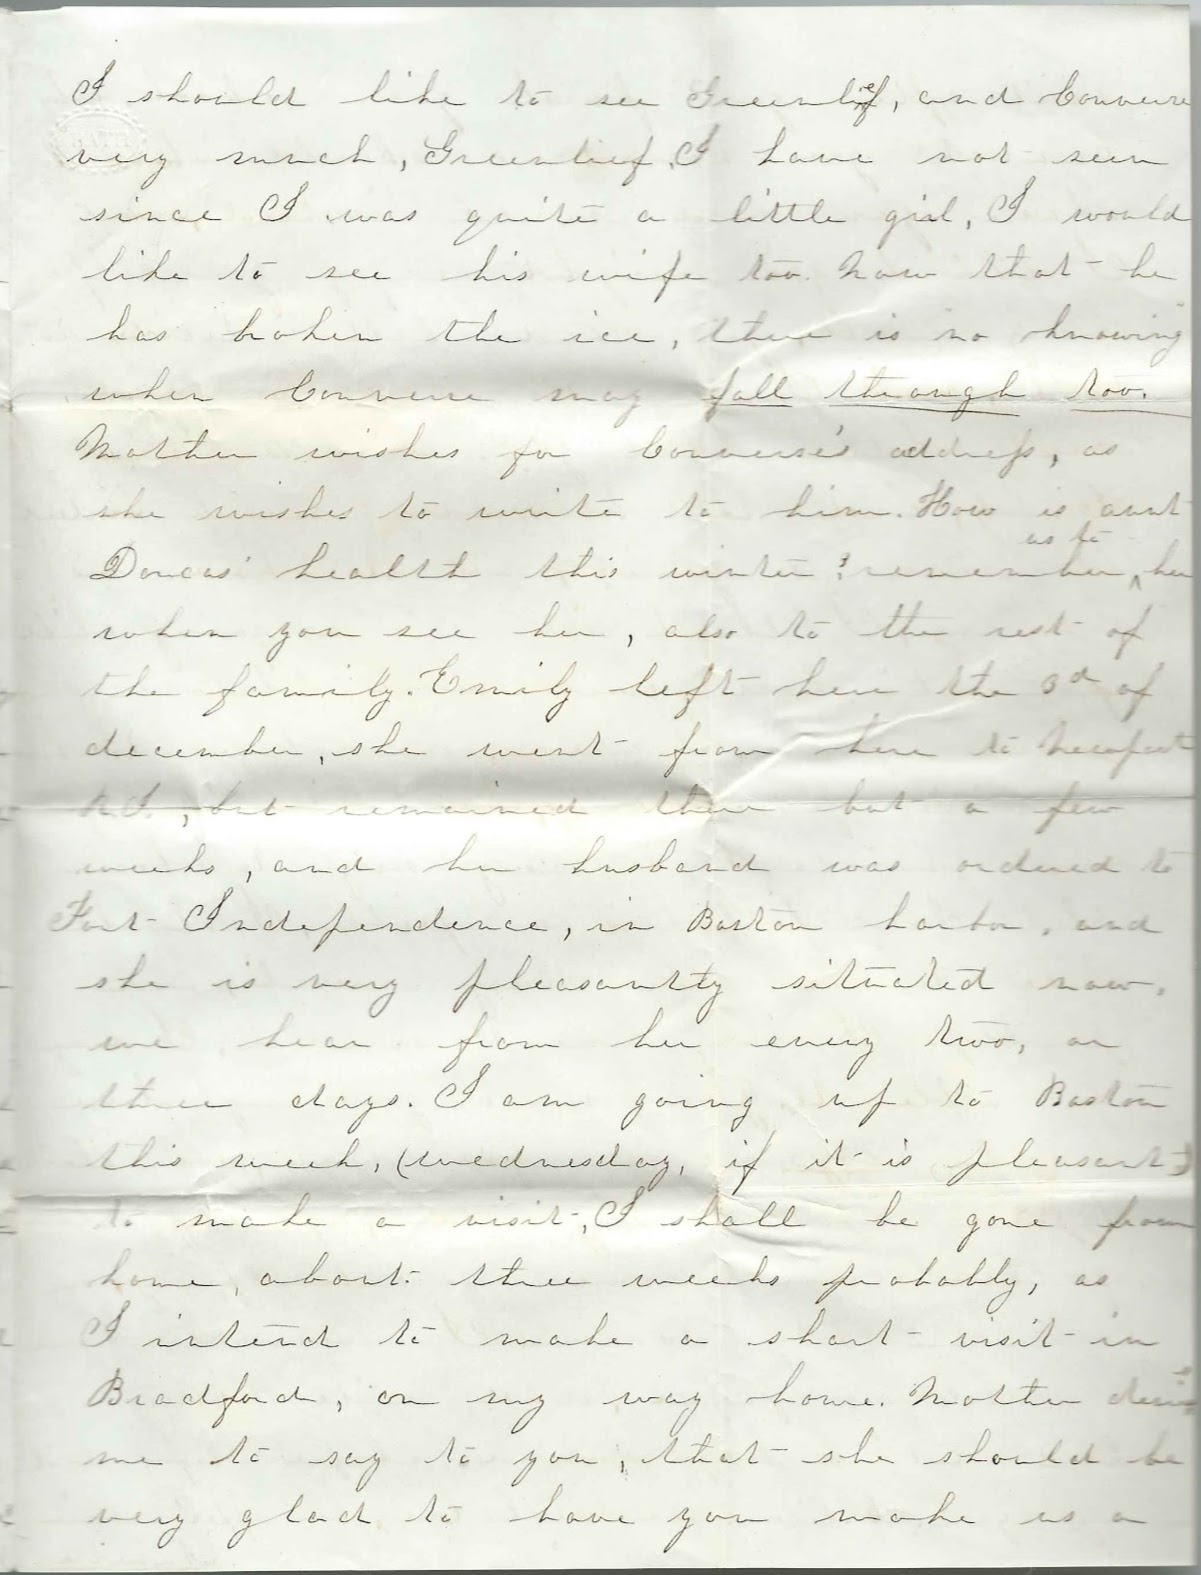 Heirlooms Reunited: 1853 Letter from Annette Maria